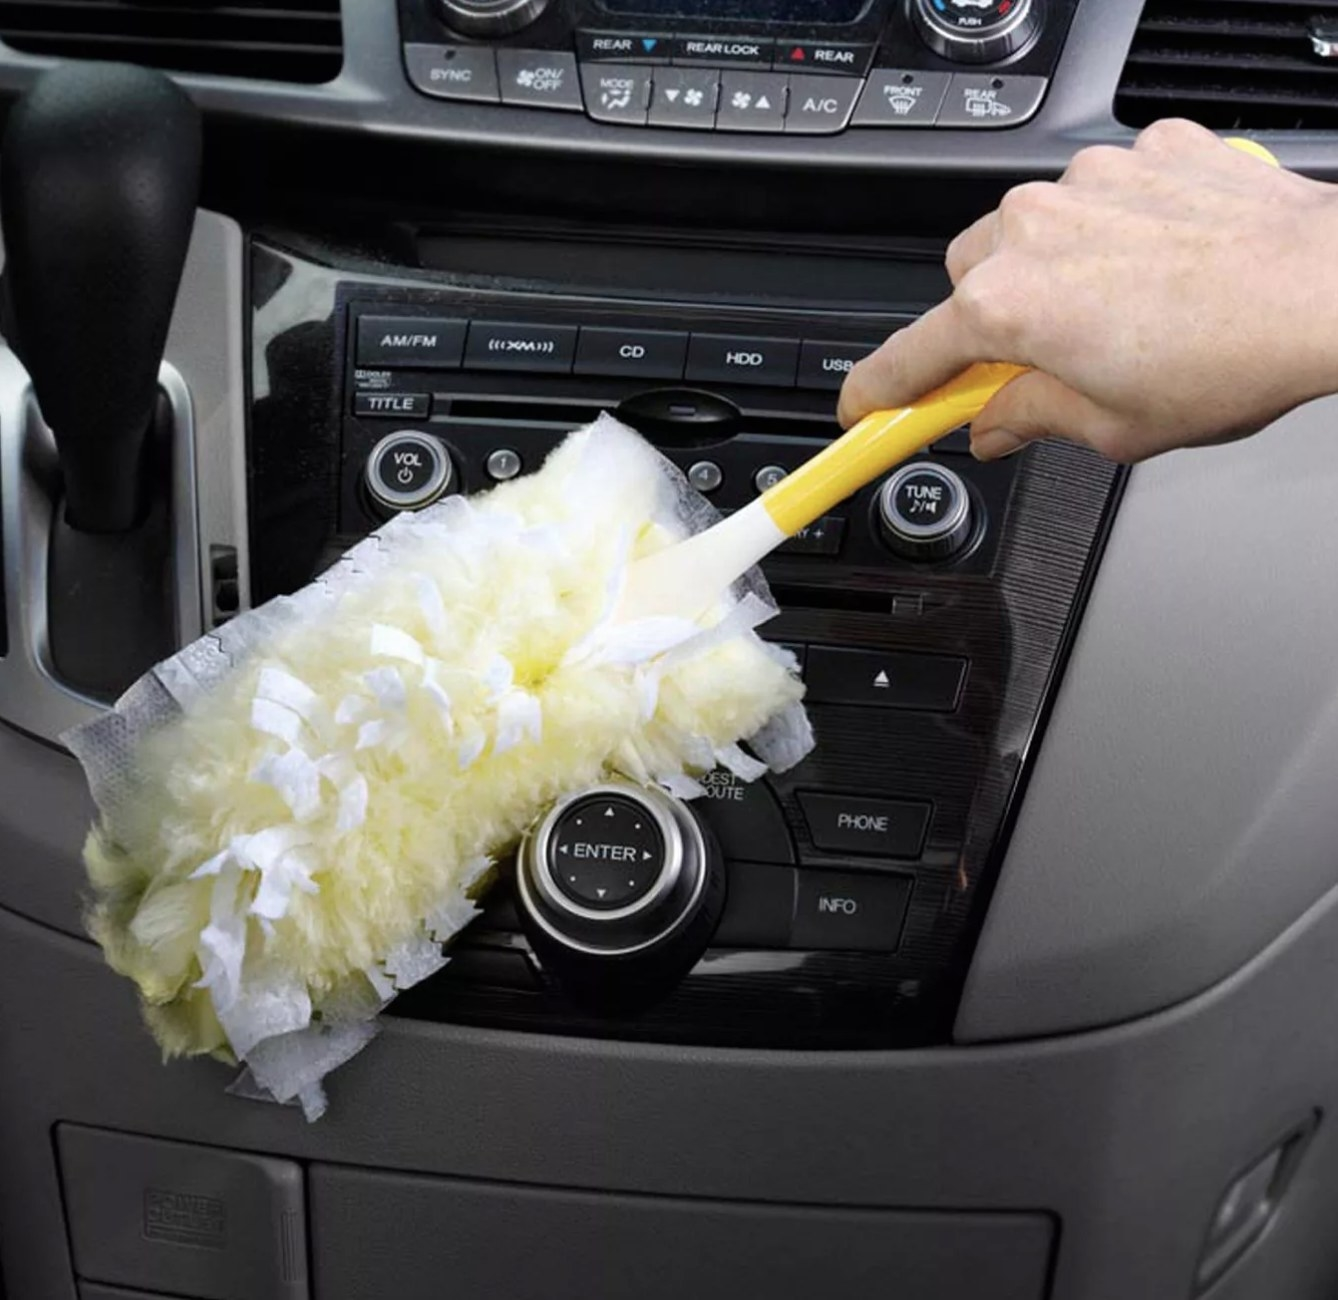 The duster being used on a car console